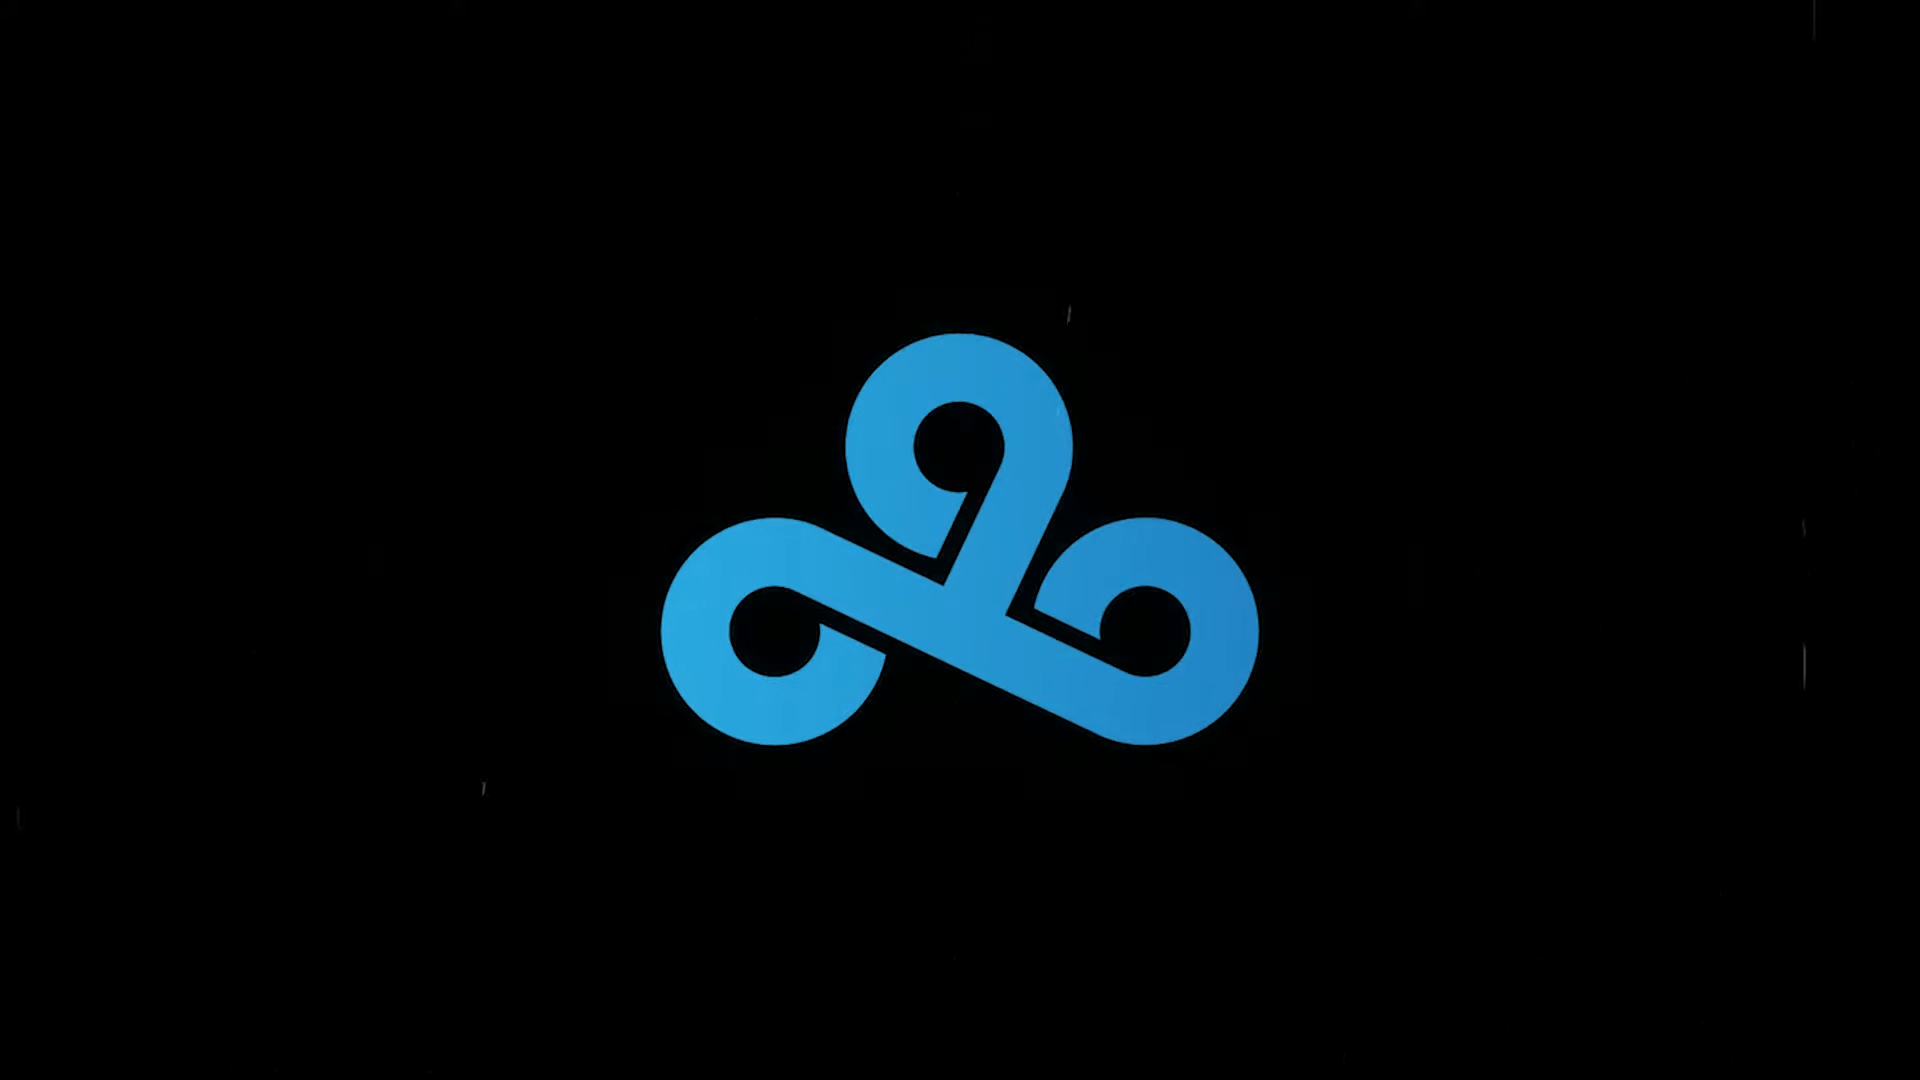 Henry 'HenryG' Greer Leaves Desk Role For Cloud 9 And Picks Up Vitality's Alex In Unprecedented Manner